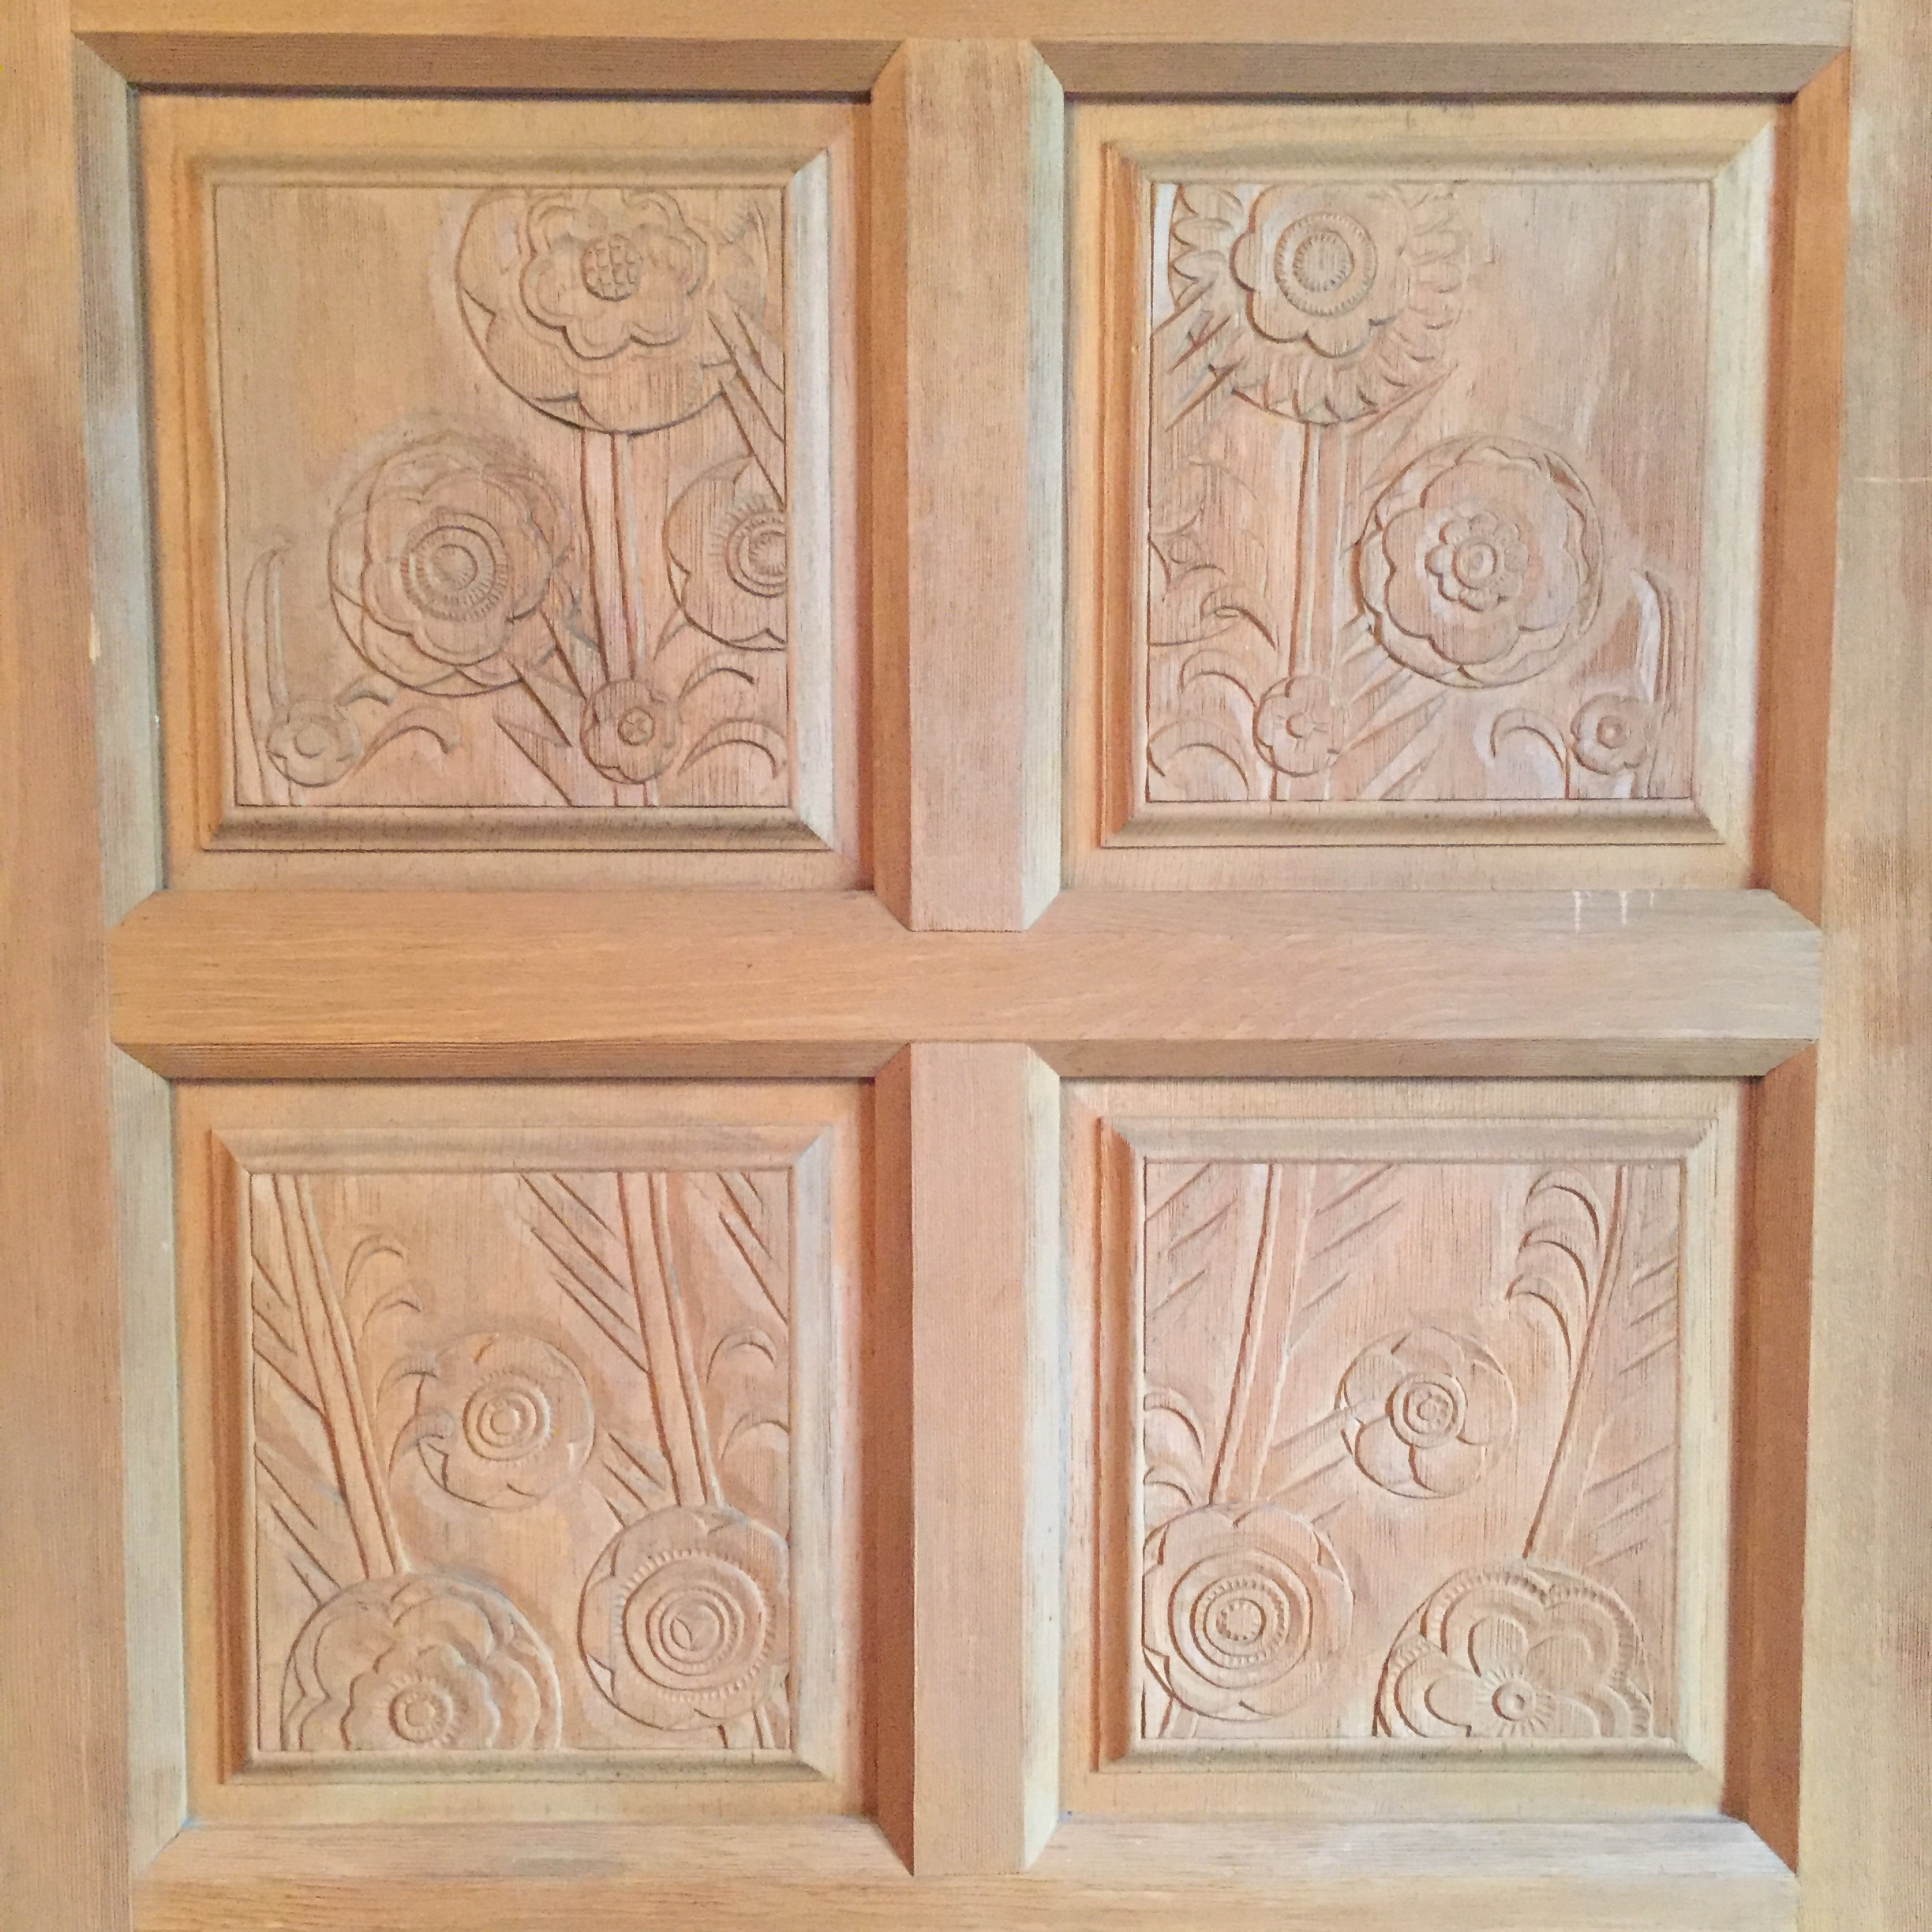 A carved wood detailing on one of the many hand-crafted antique doors on the property.